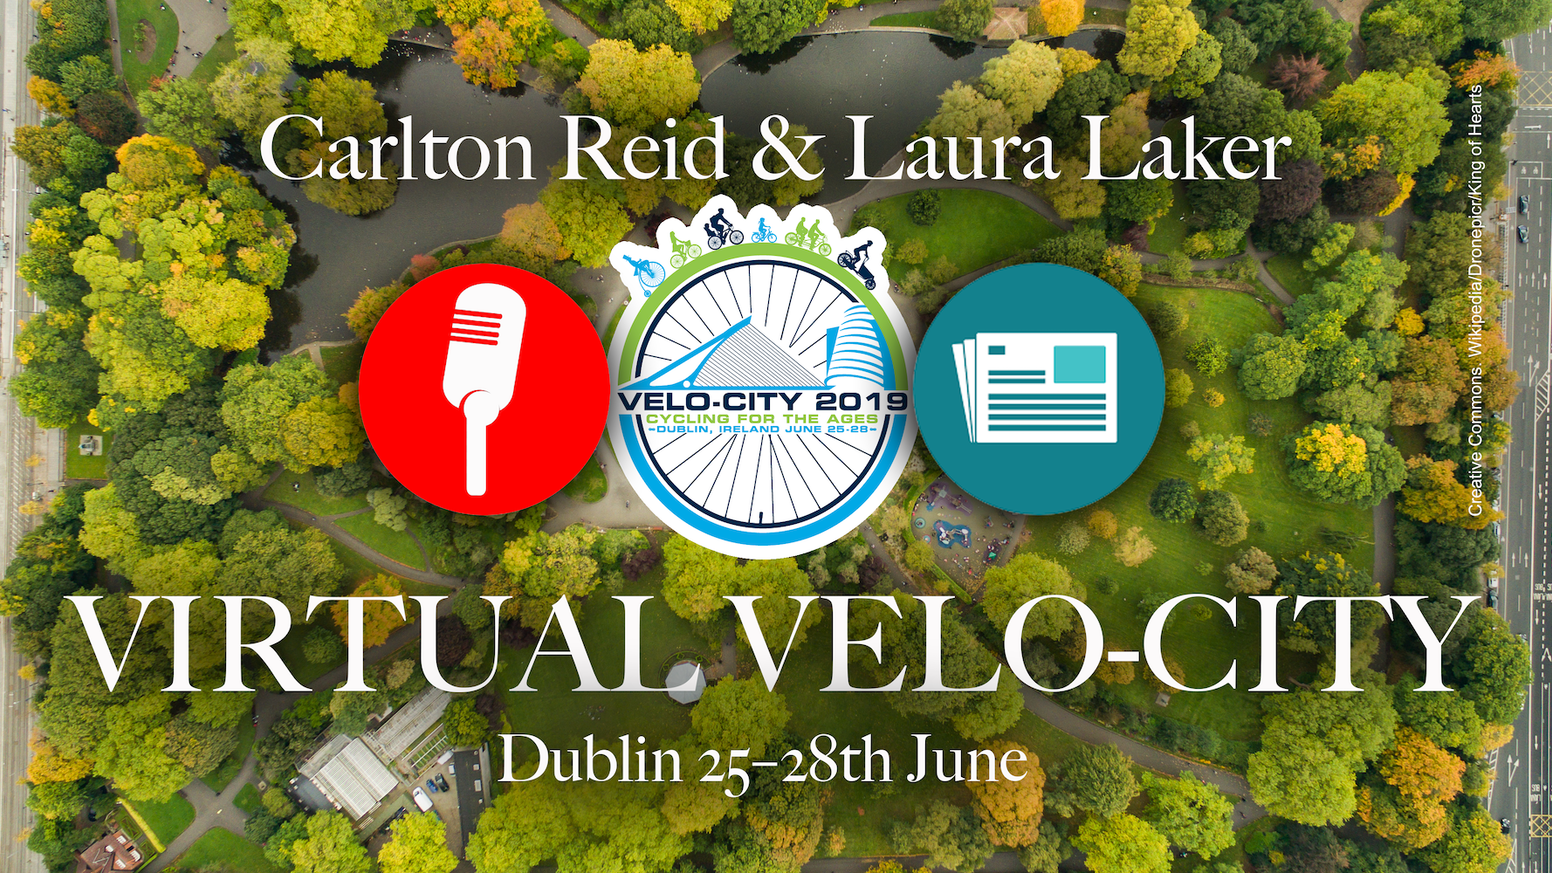 Exclusive content sent only to project backers by Carlton Reid & Laura Laker from the Velo-city global cycling summit in Dublin.